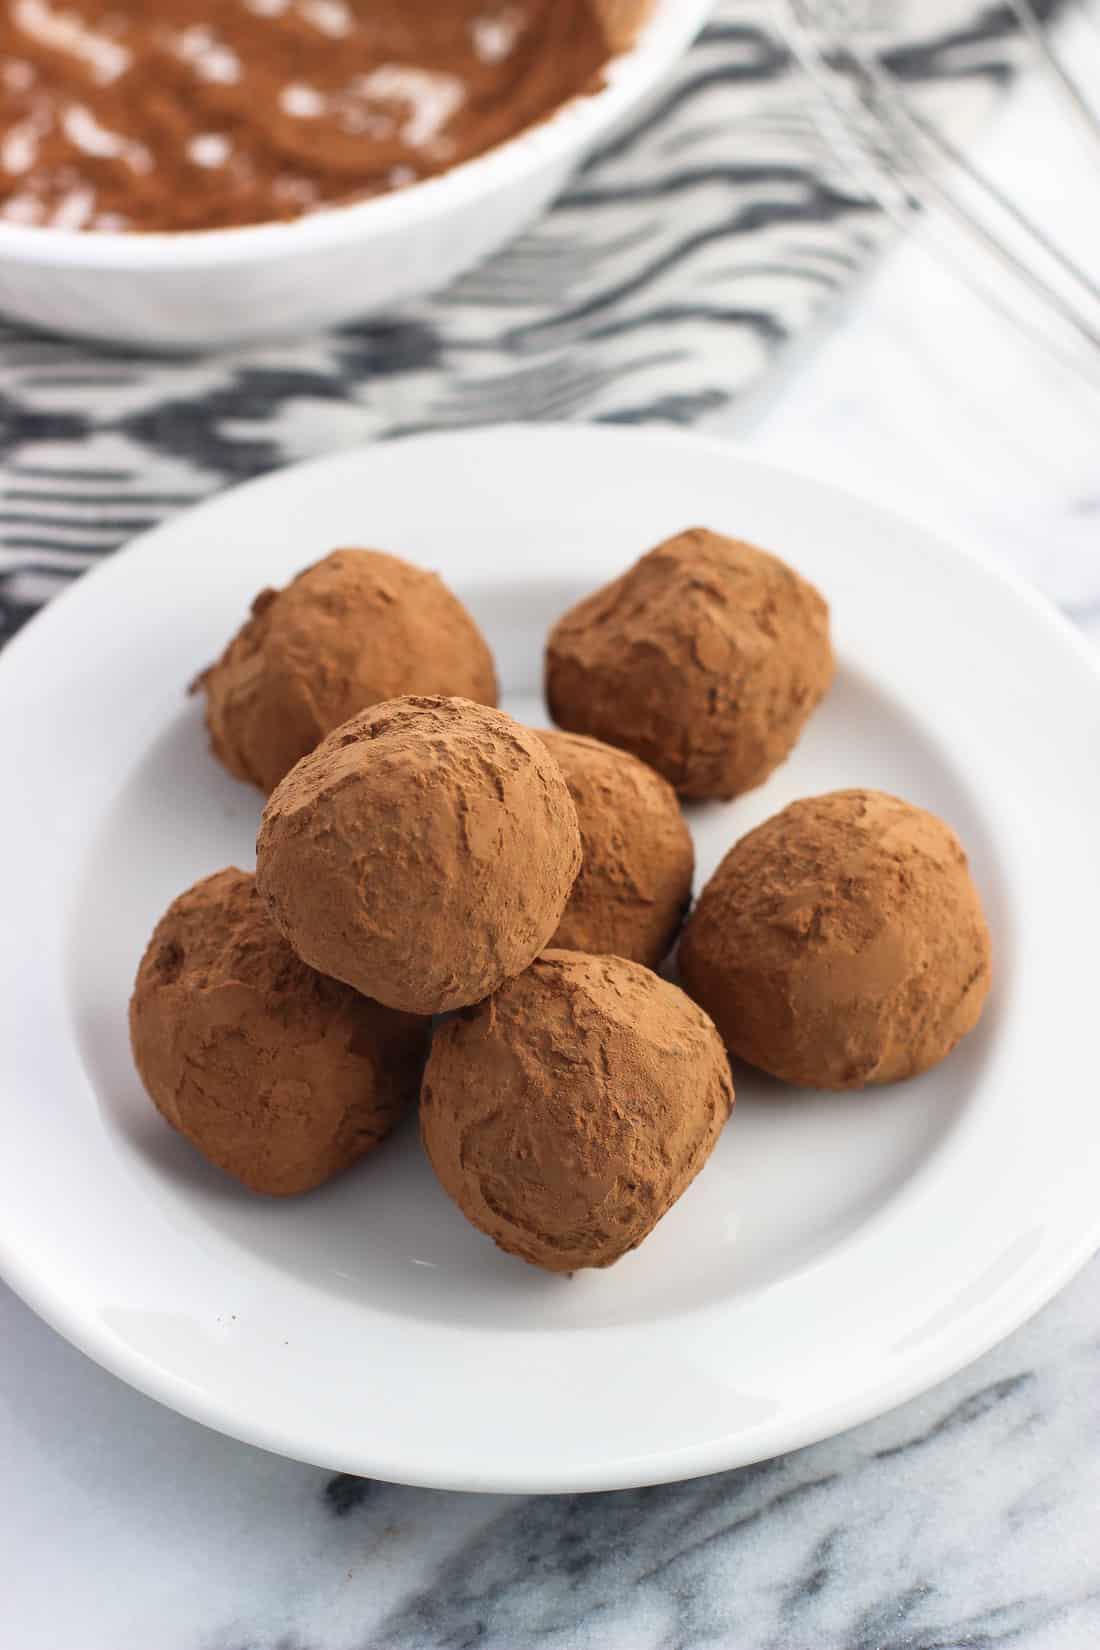 Seven truffles piled on a ceramic dessert plate with a bowl of cocoa powder and a whisk in the background